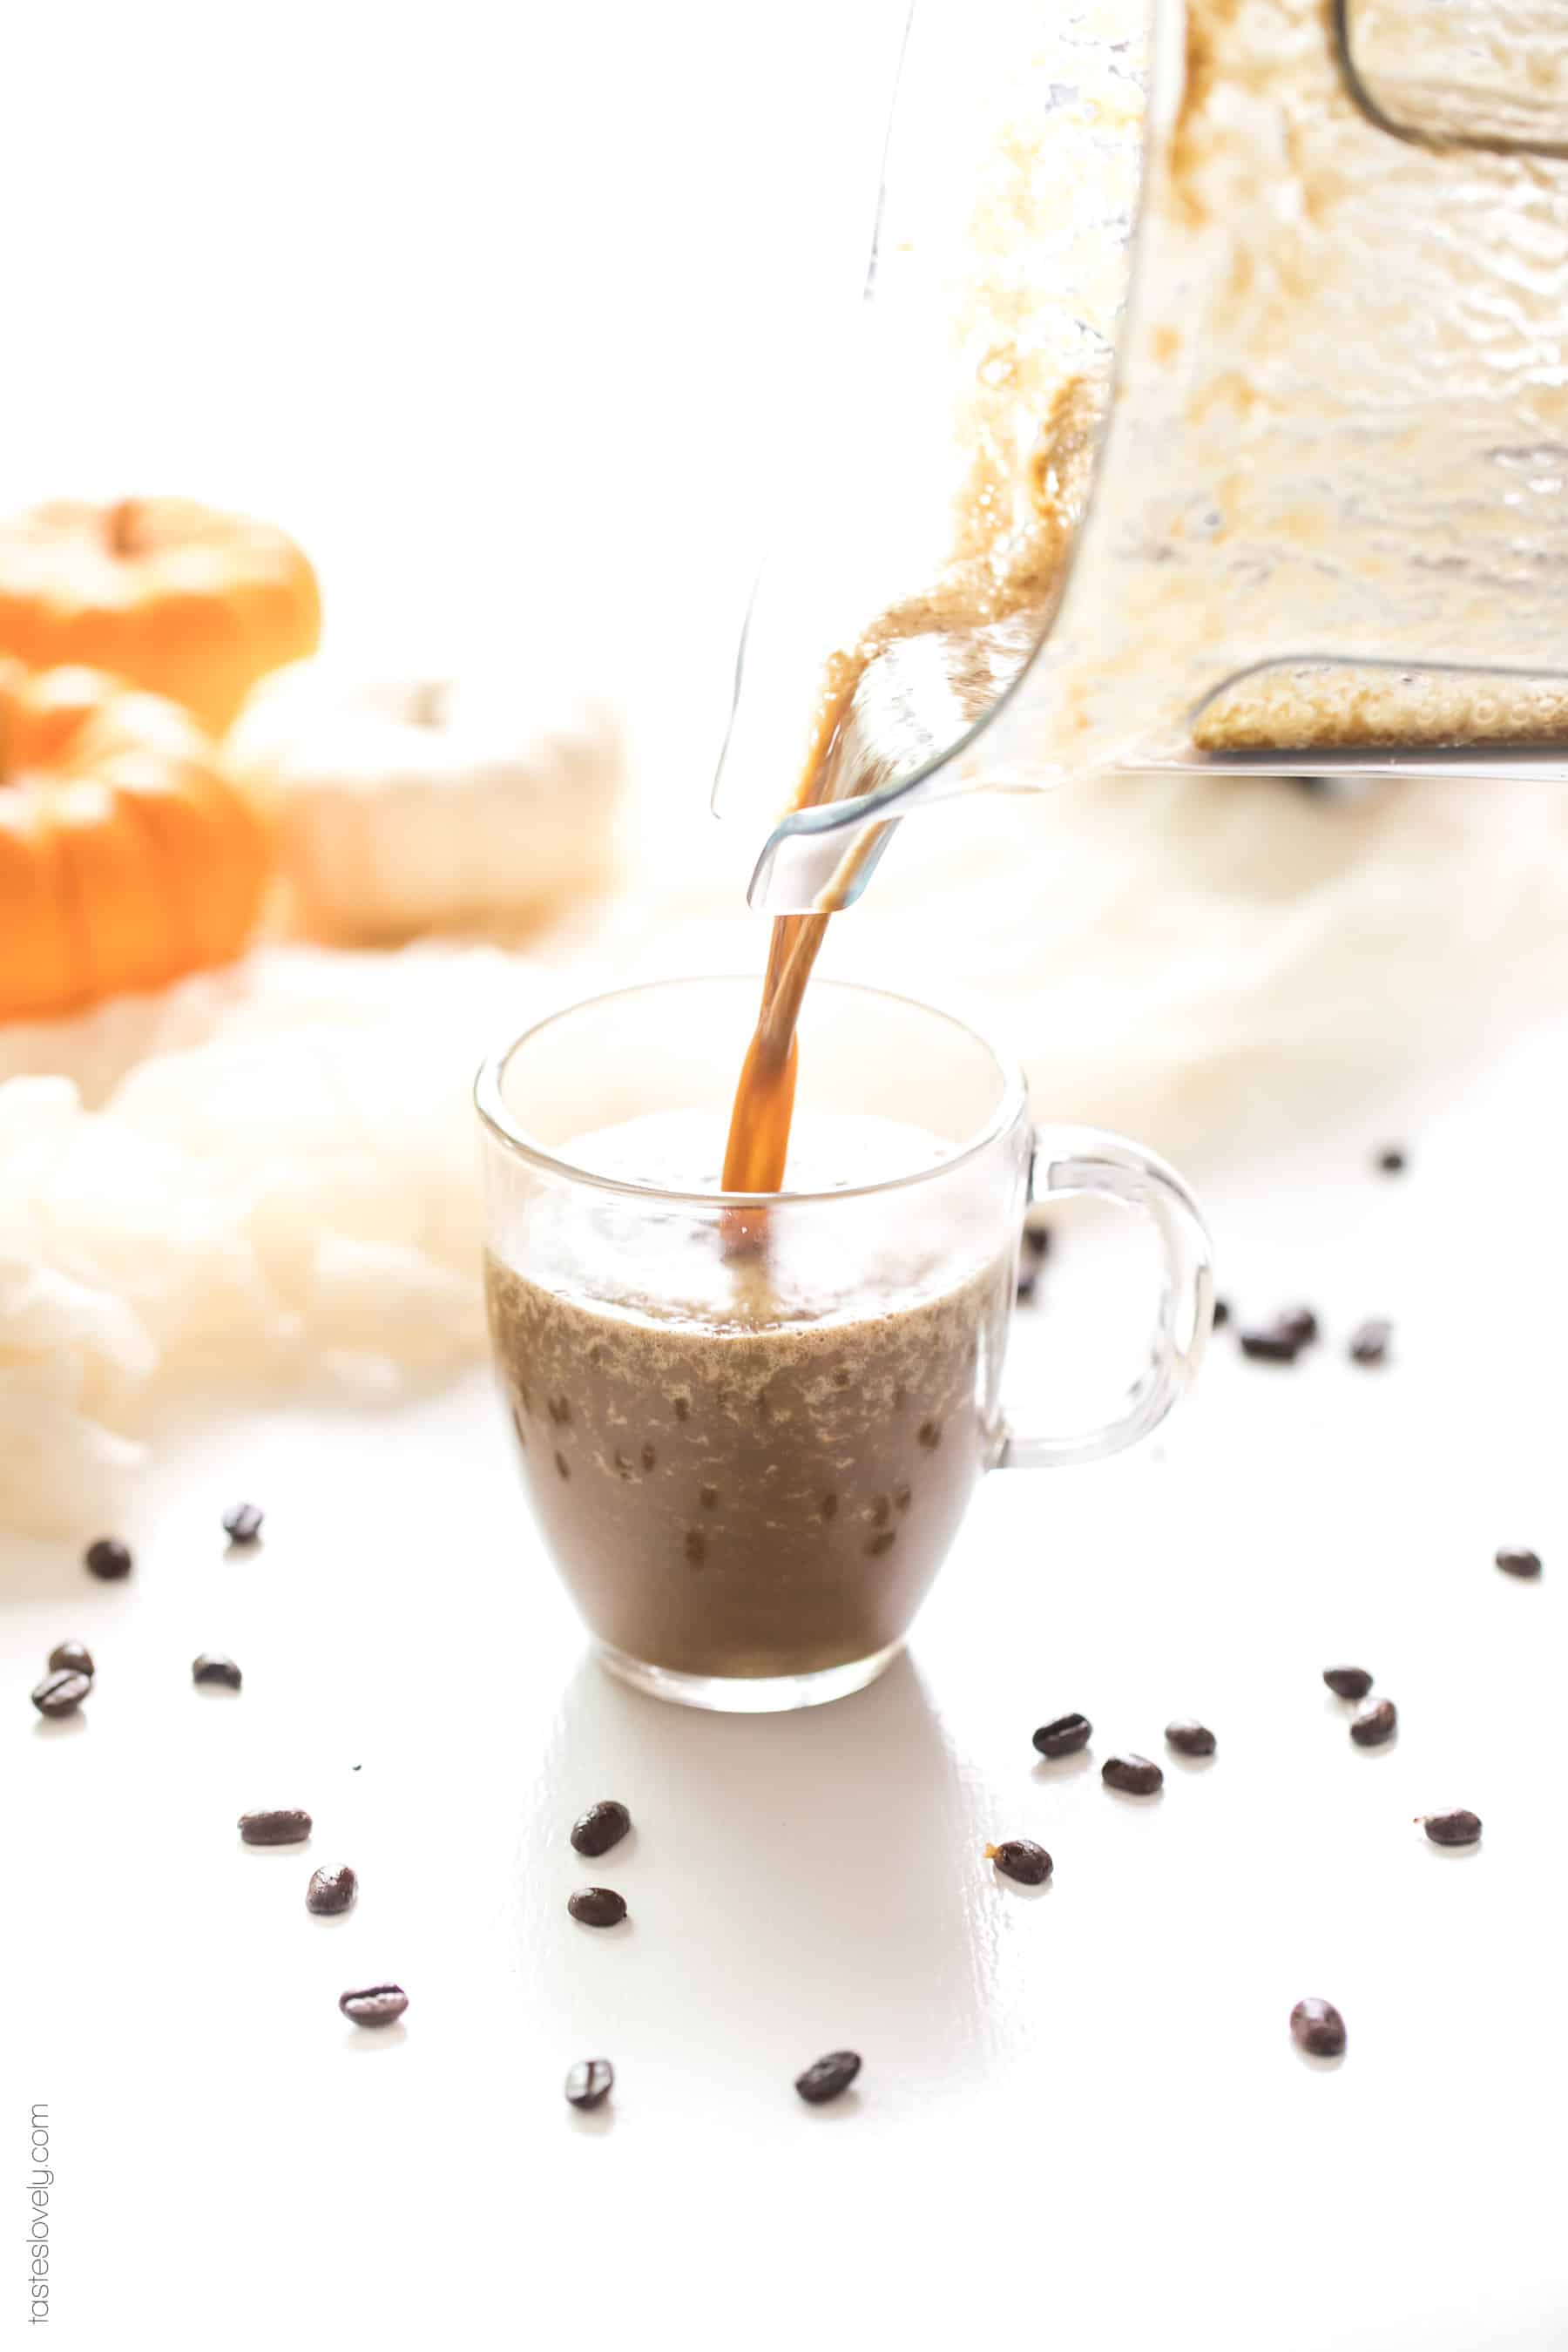 Paleo & Whole30 Pumpkin Spice Latte - sweetened naturally with dates and flavored with real pumpkin puree. Made in a blender, no fancy coffee machines needed! Paleo, Whole30, dairy free, sugar free, gluten free, vegan, clean eating.